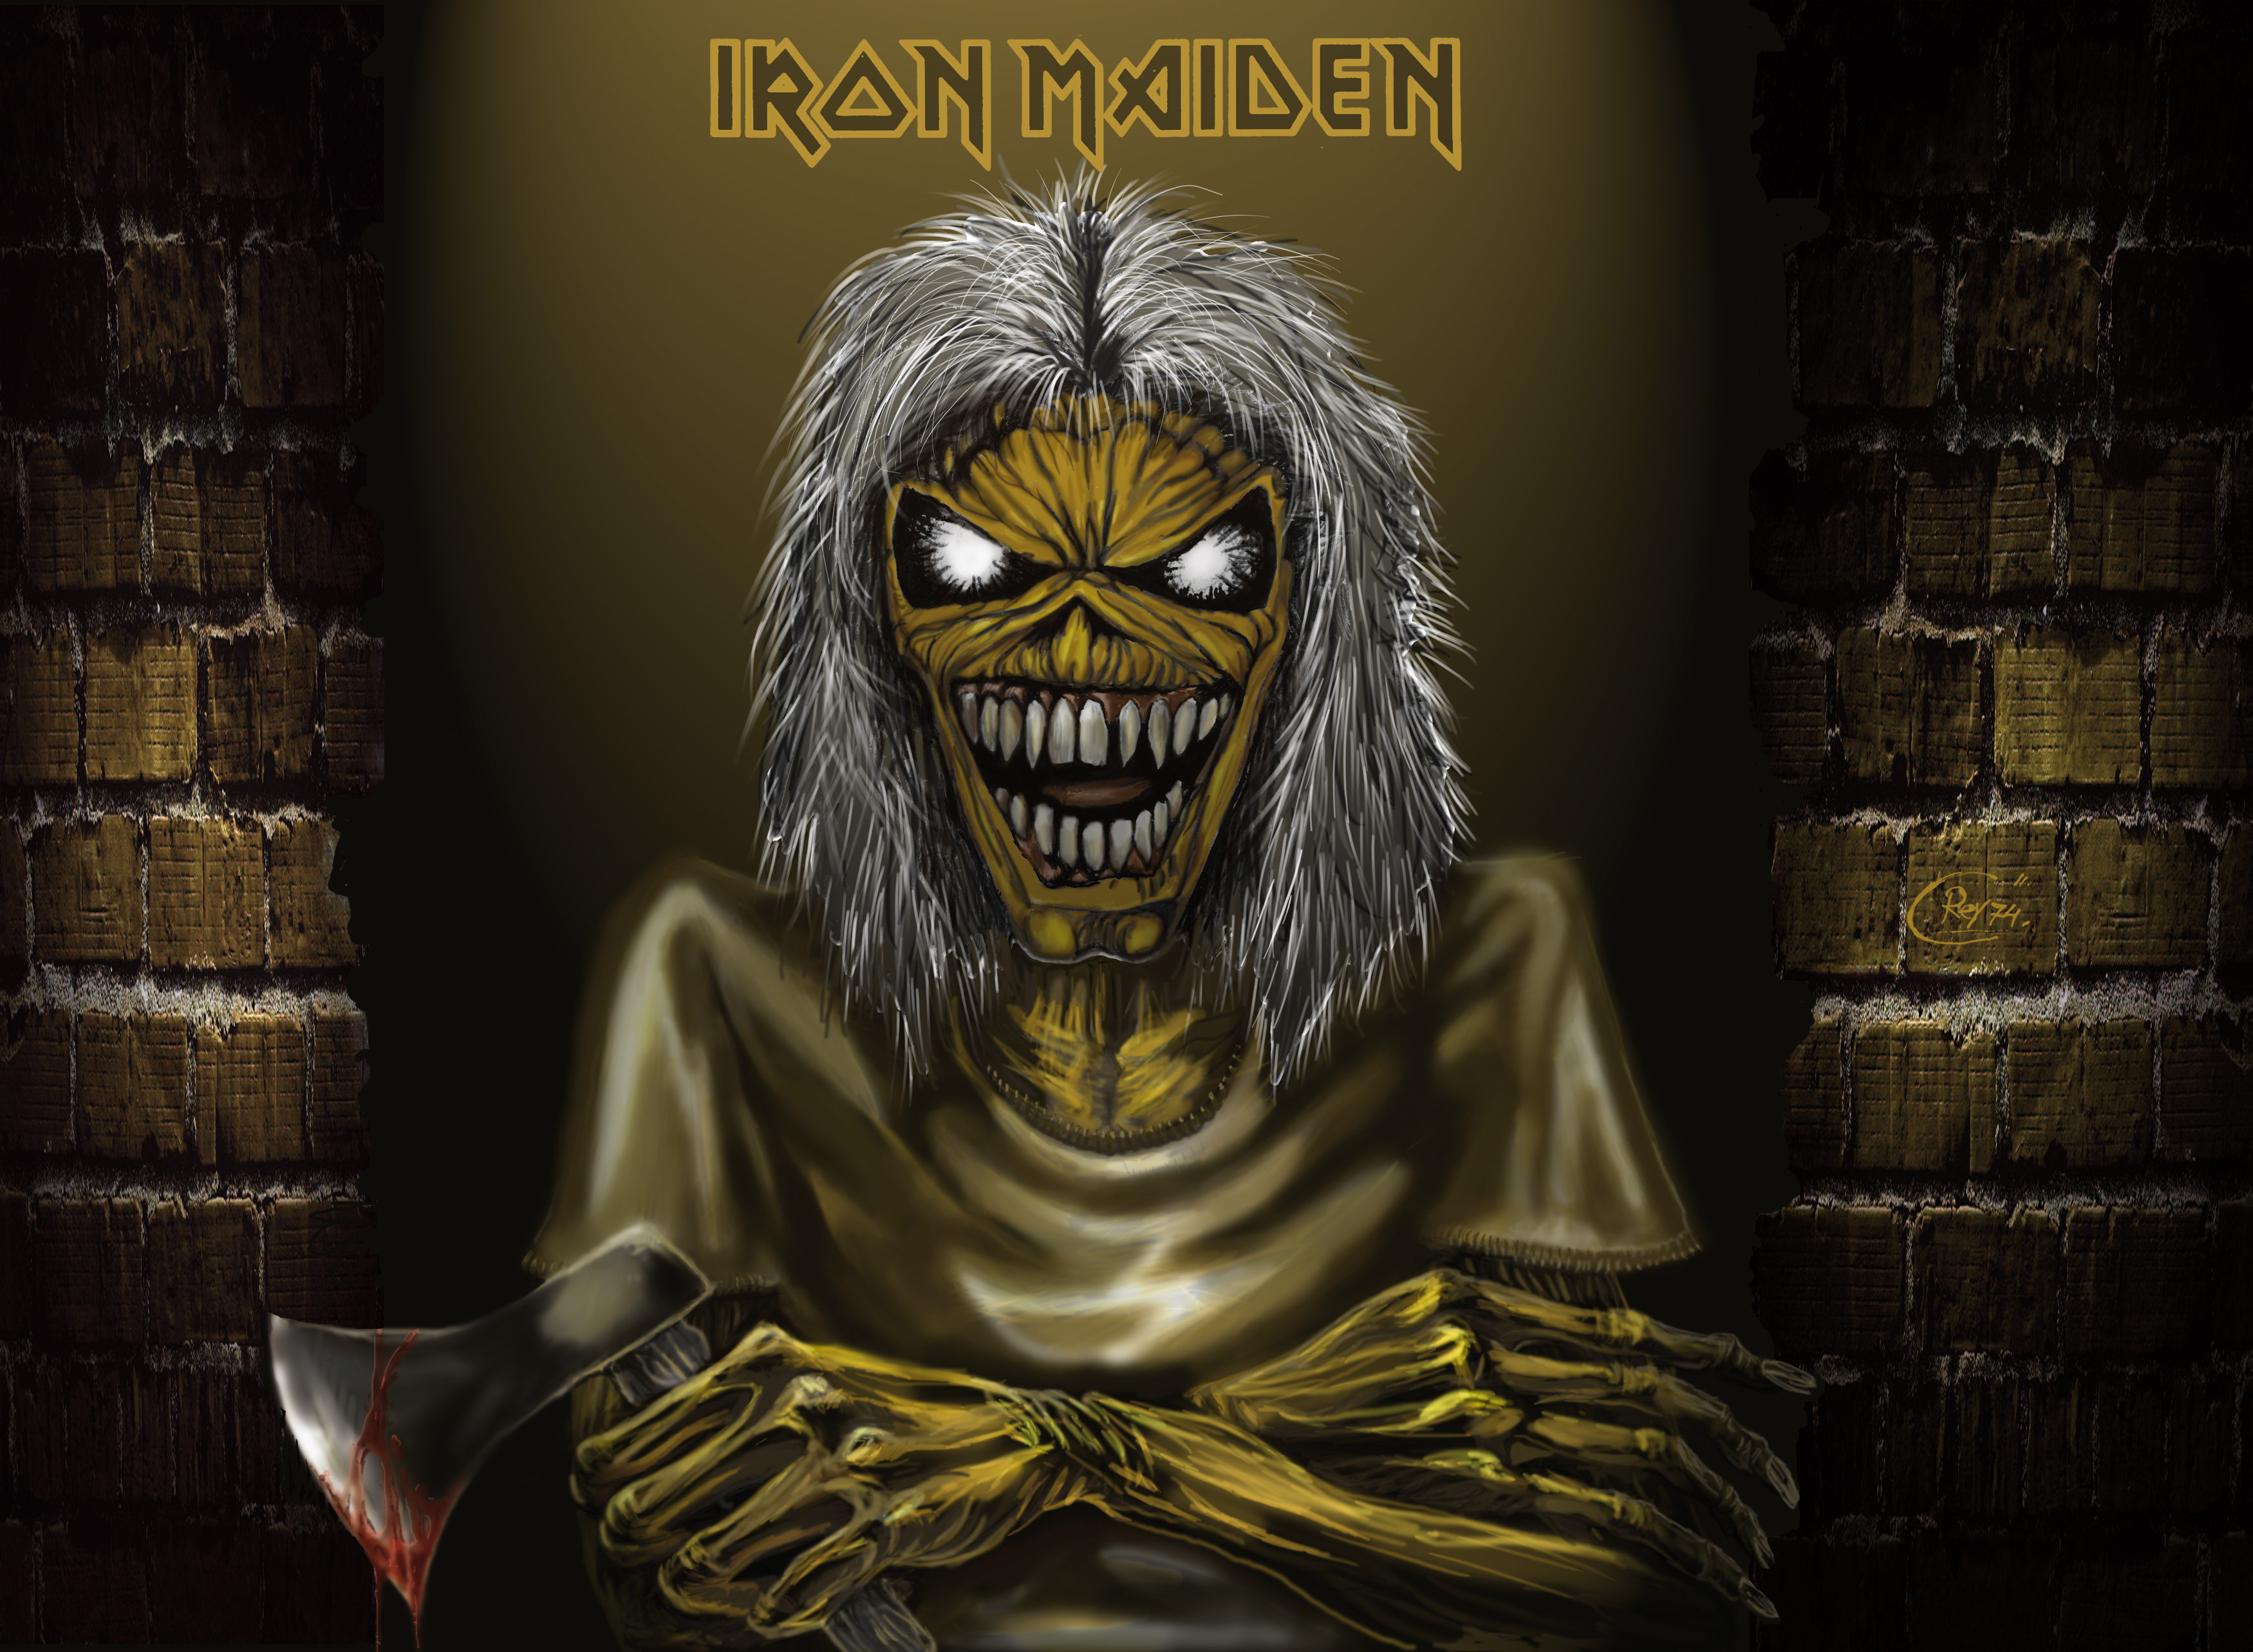 iron maiden hd wallpaper background image 3500x2567 id 106542 wallpaper abyss. Black Bedroom Furniture Sets. Home Design Ideas